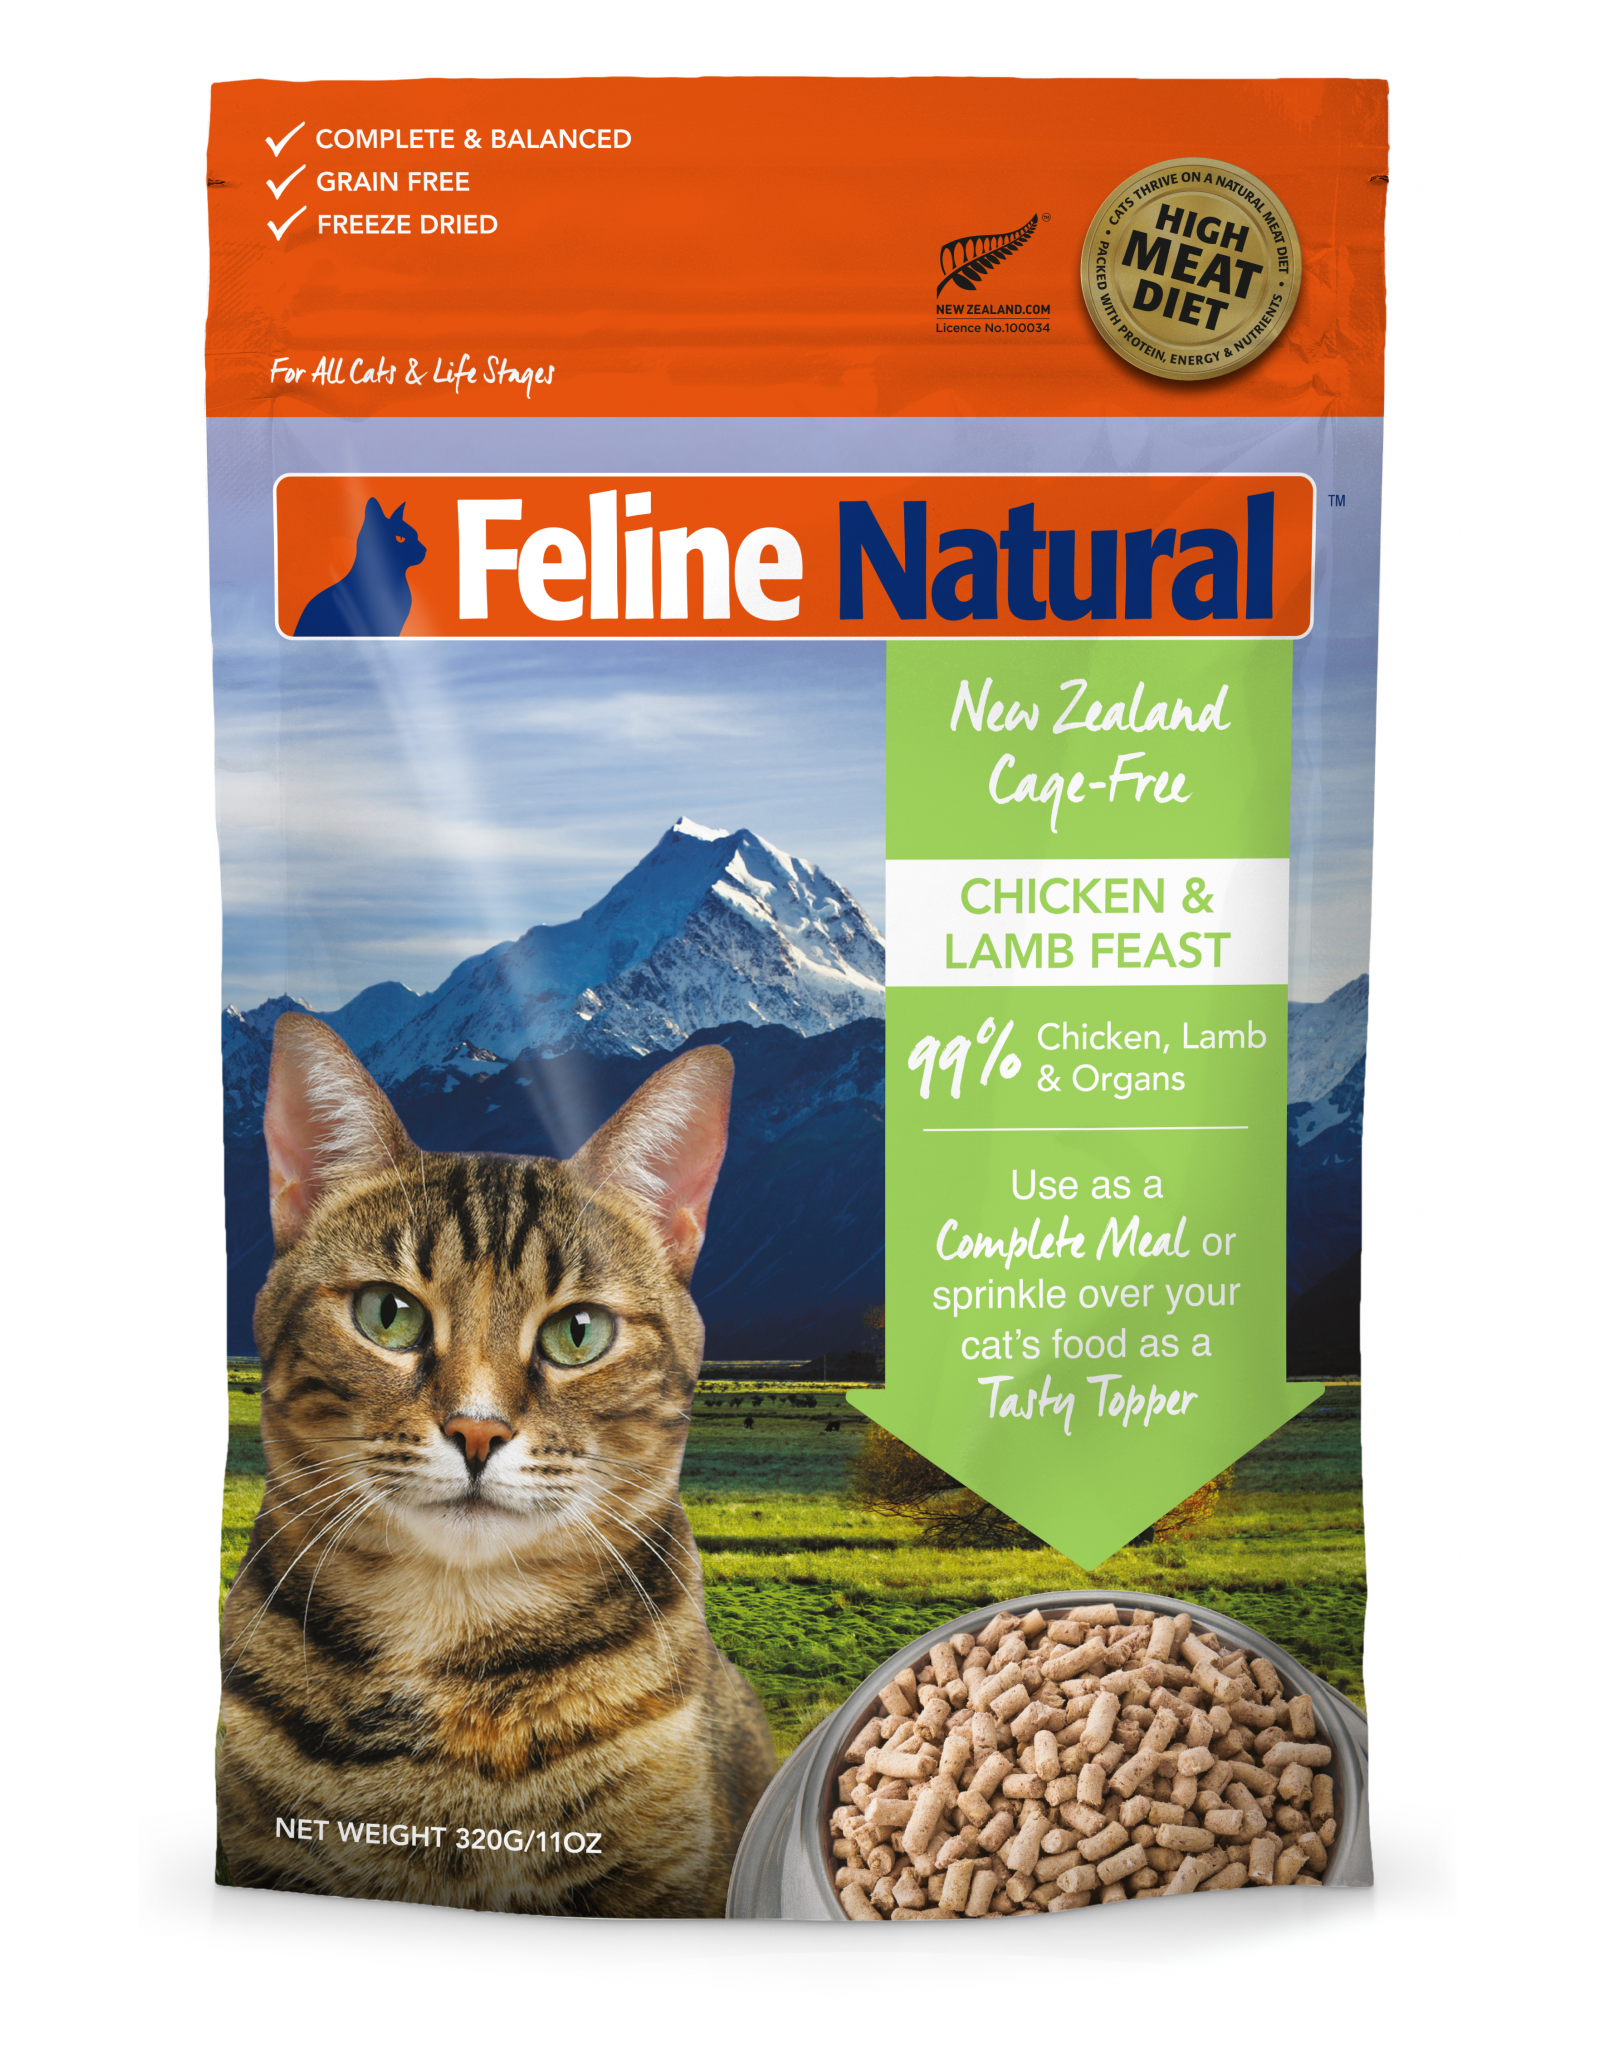 Feline Natural Feline Natural Freeze Dried Chicken and Lamb Feast